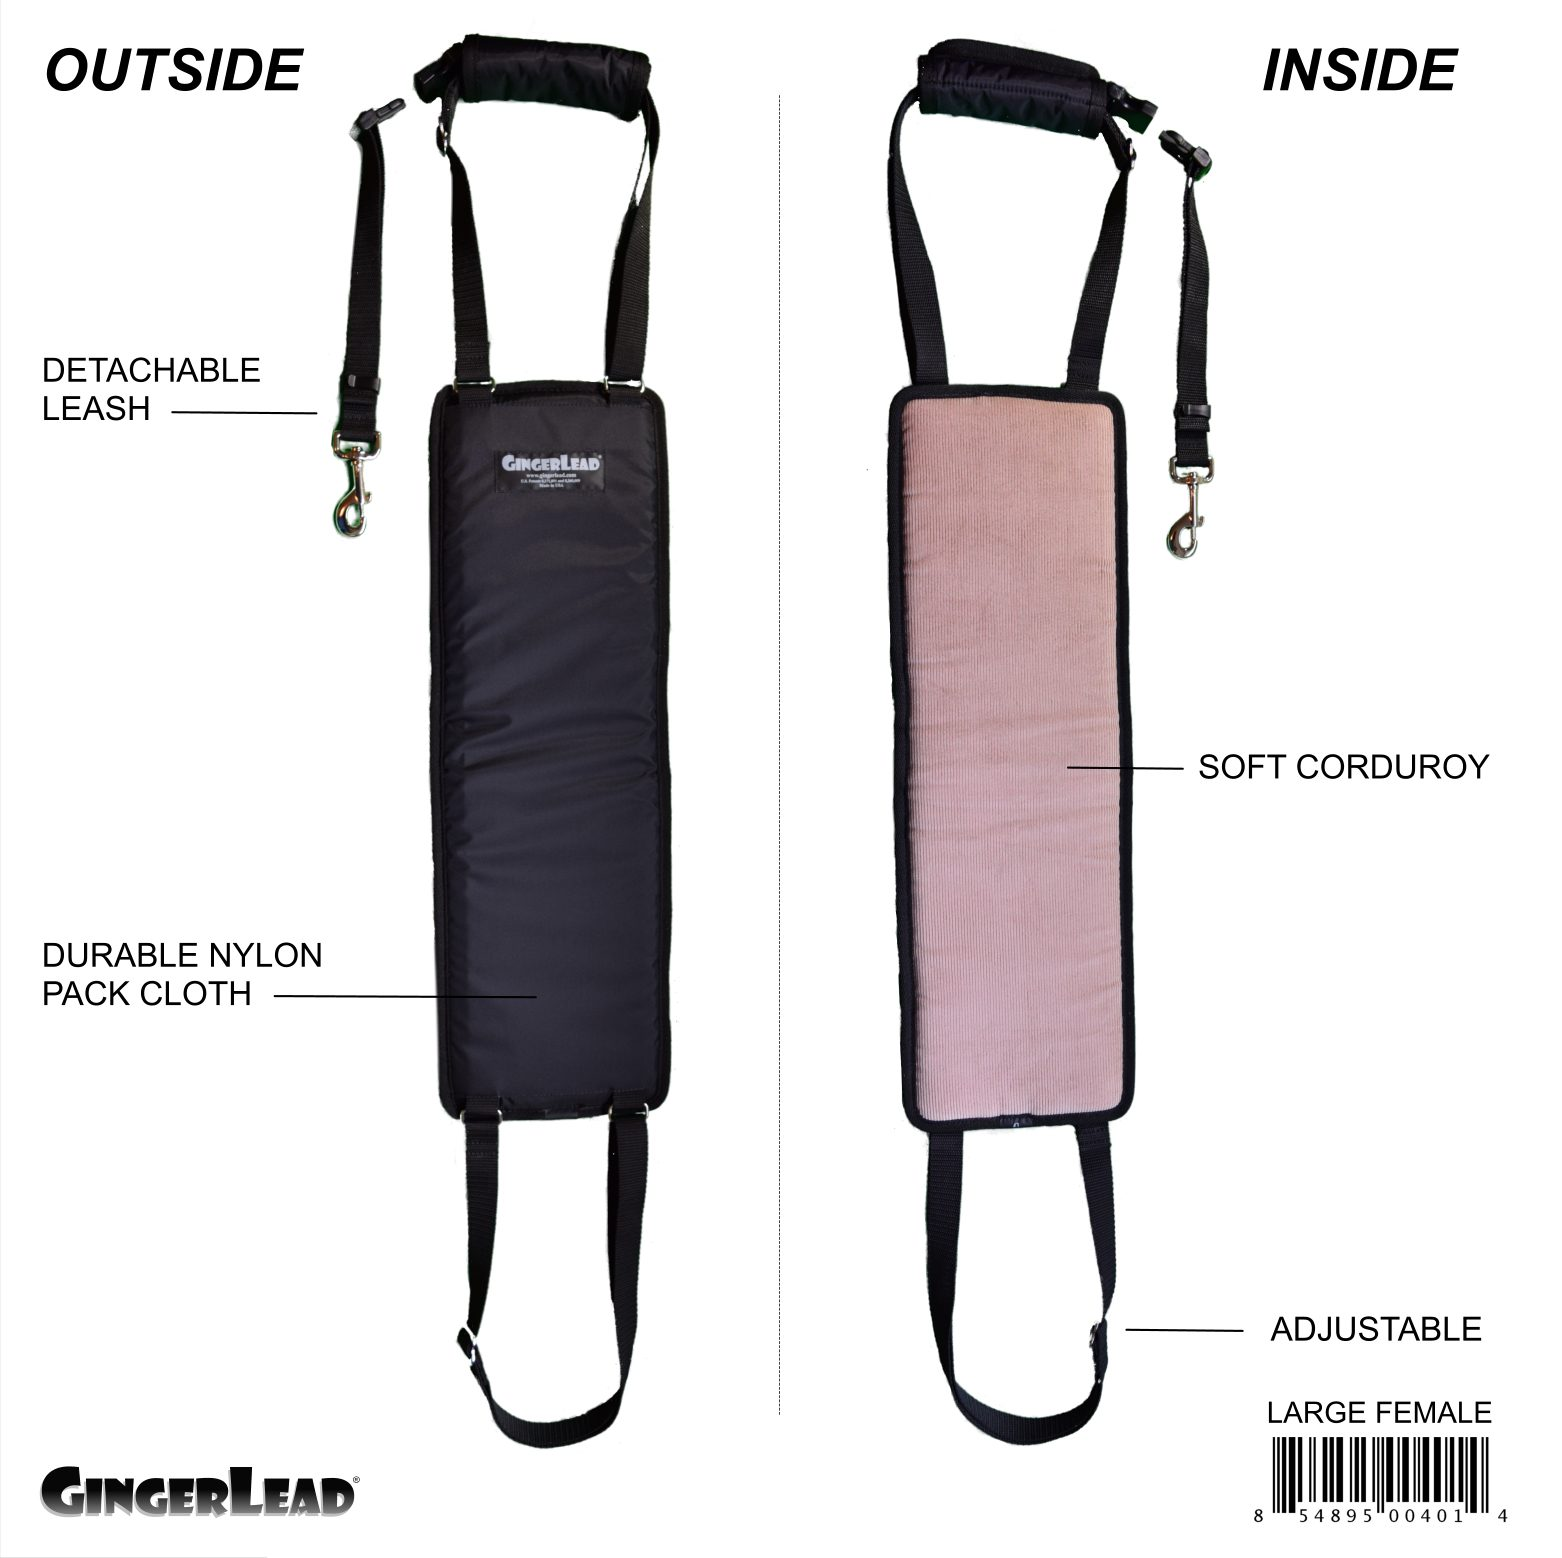 GingerLead Dog Sling - Large Female Size - Out of Box